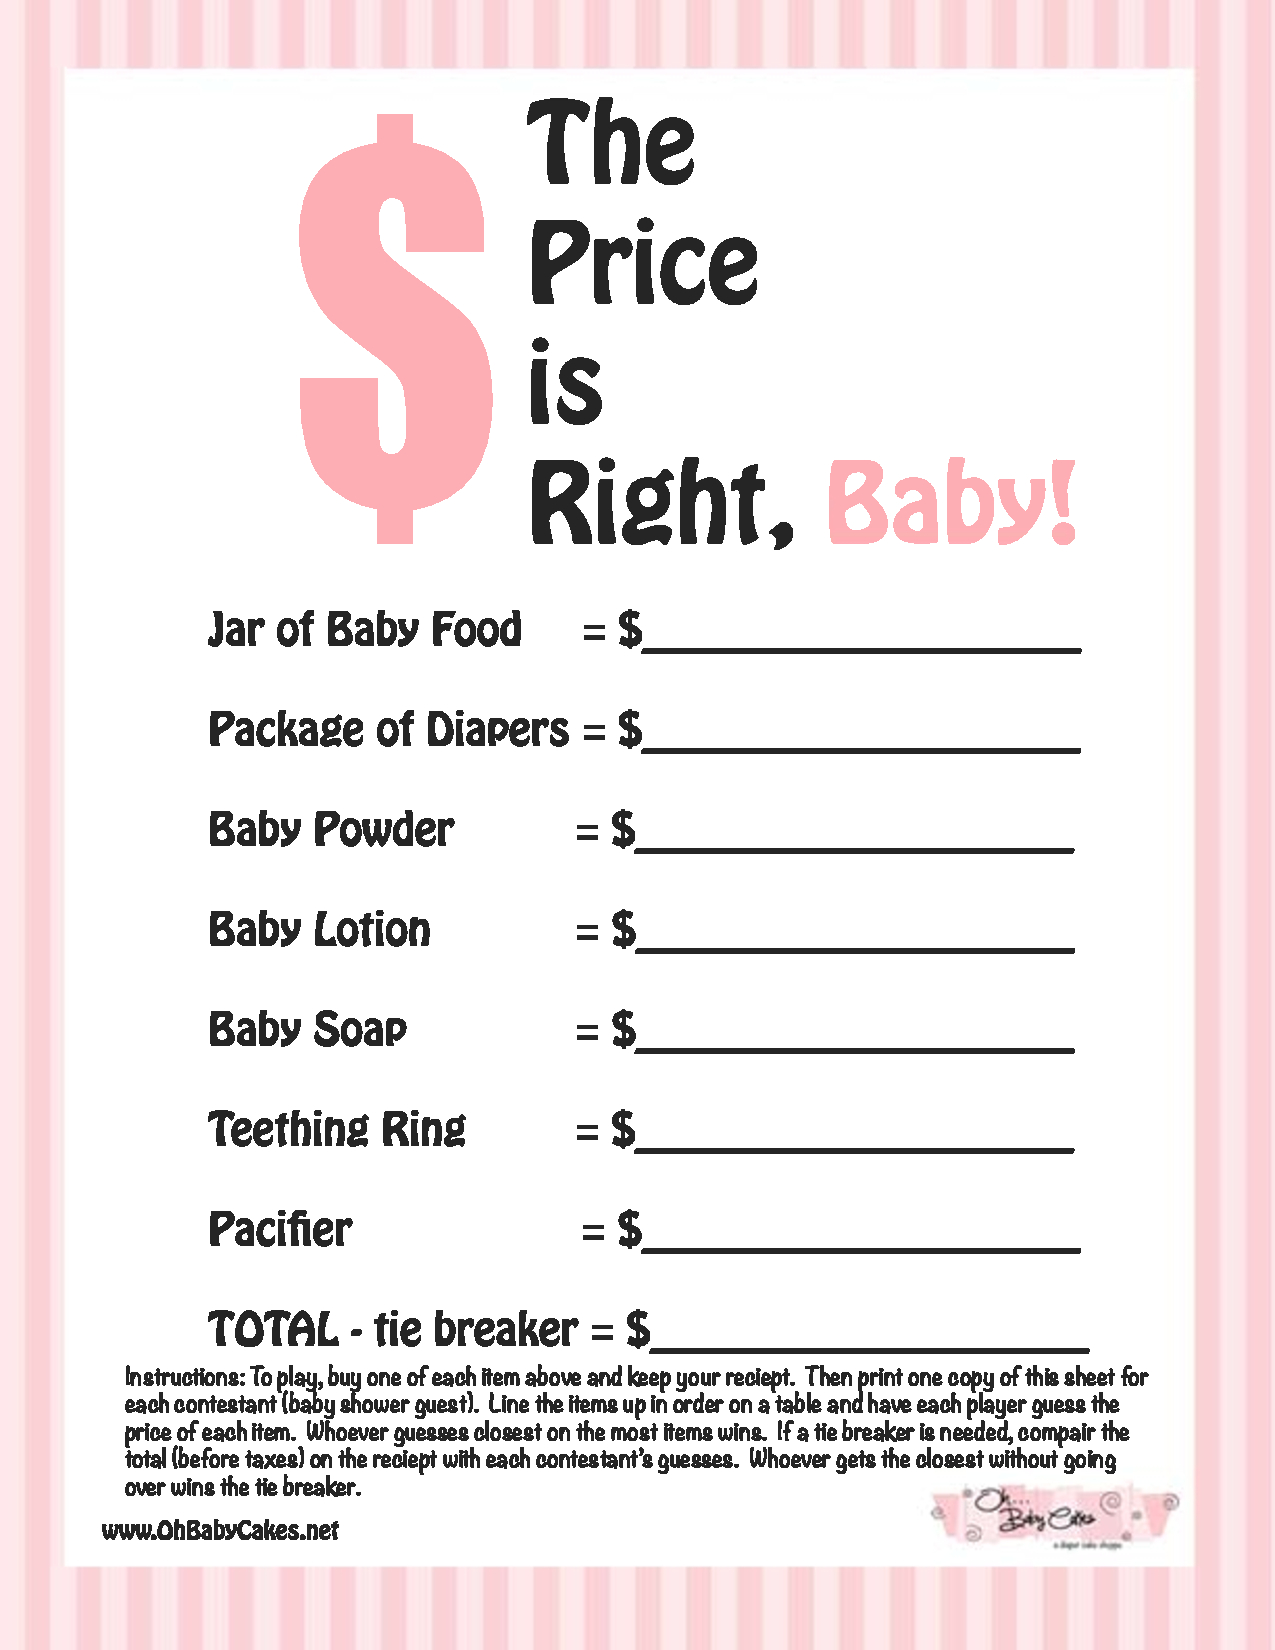 Baby Boy Shower Agreeable Free Printable Baby Shower Games For Large - Price Is Right Baby Shower Game Free Printable